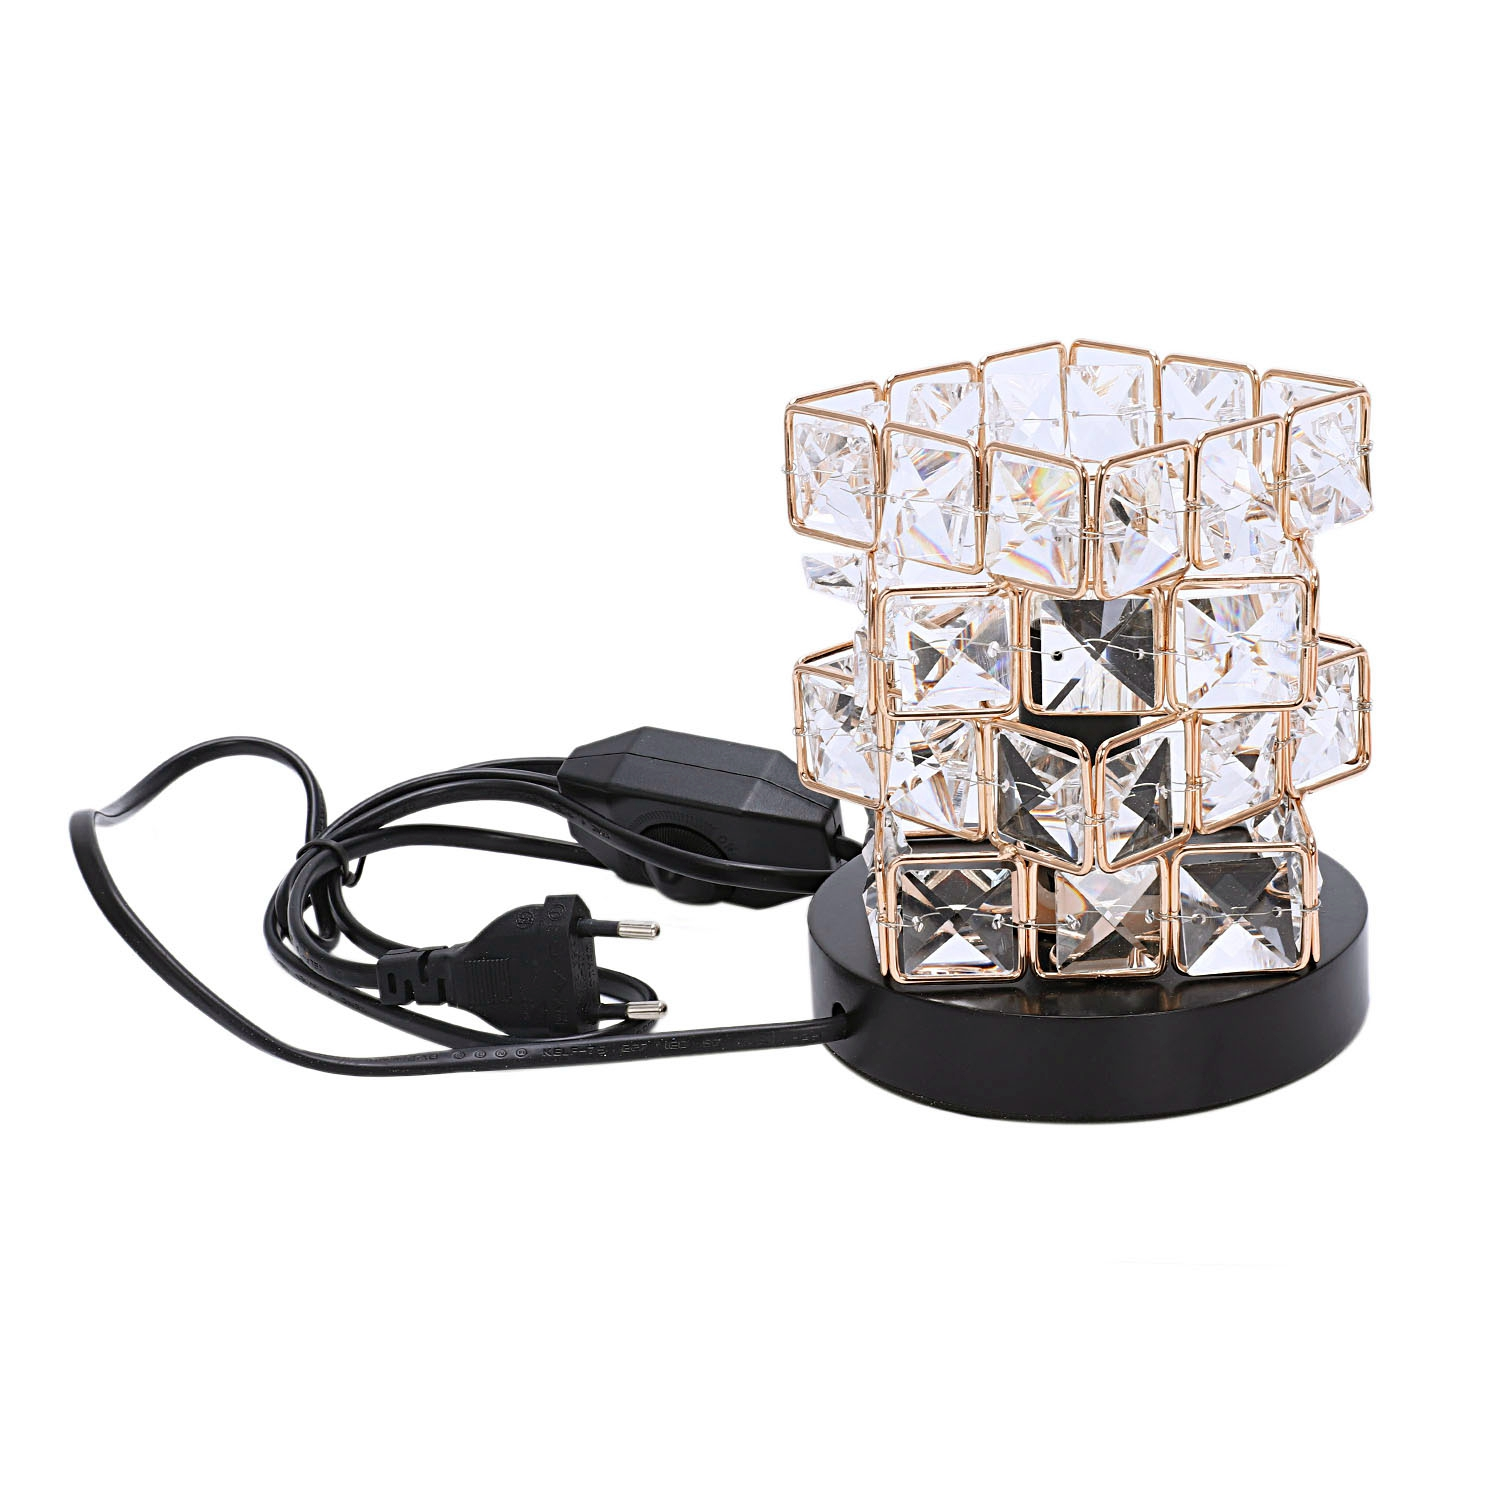 Dimmers New Fashion New Himalayan Salt Lamp,natural Hymalain Salt Rock In Crystal Basket With Dimmer Switch,ul-listed Cord &wood Base Eu Plug Driving A Roaring Trade Lights & Lighting